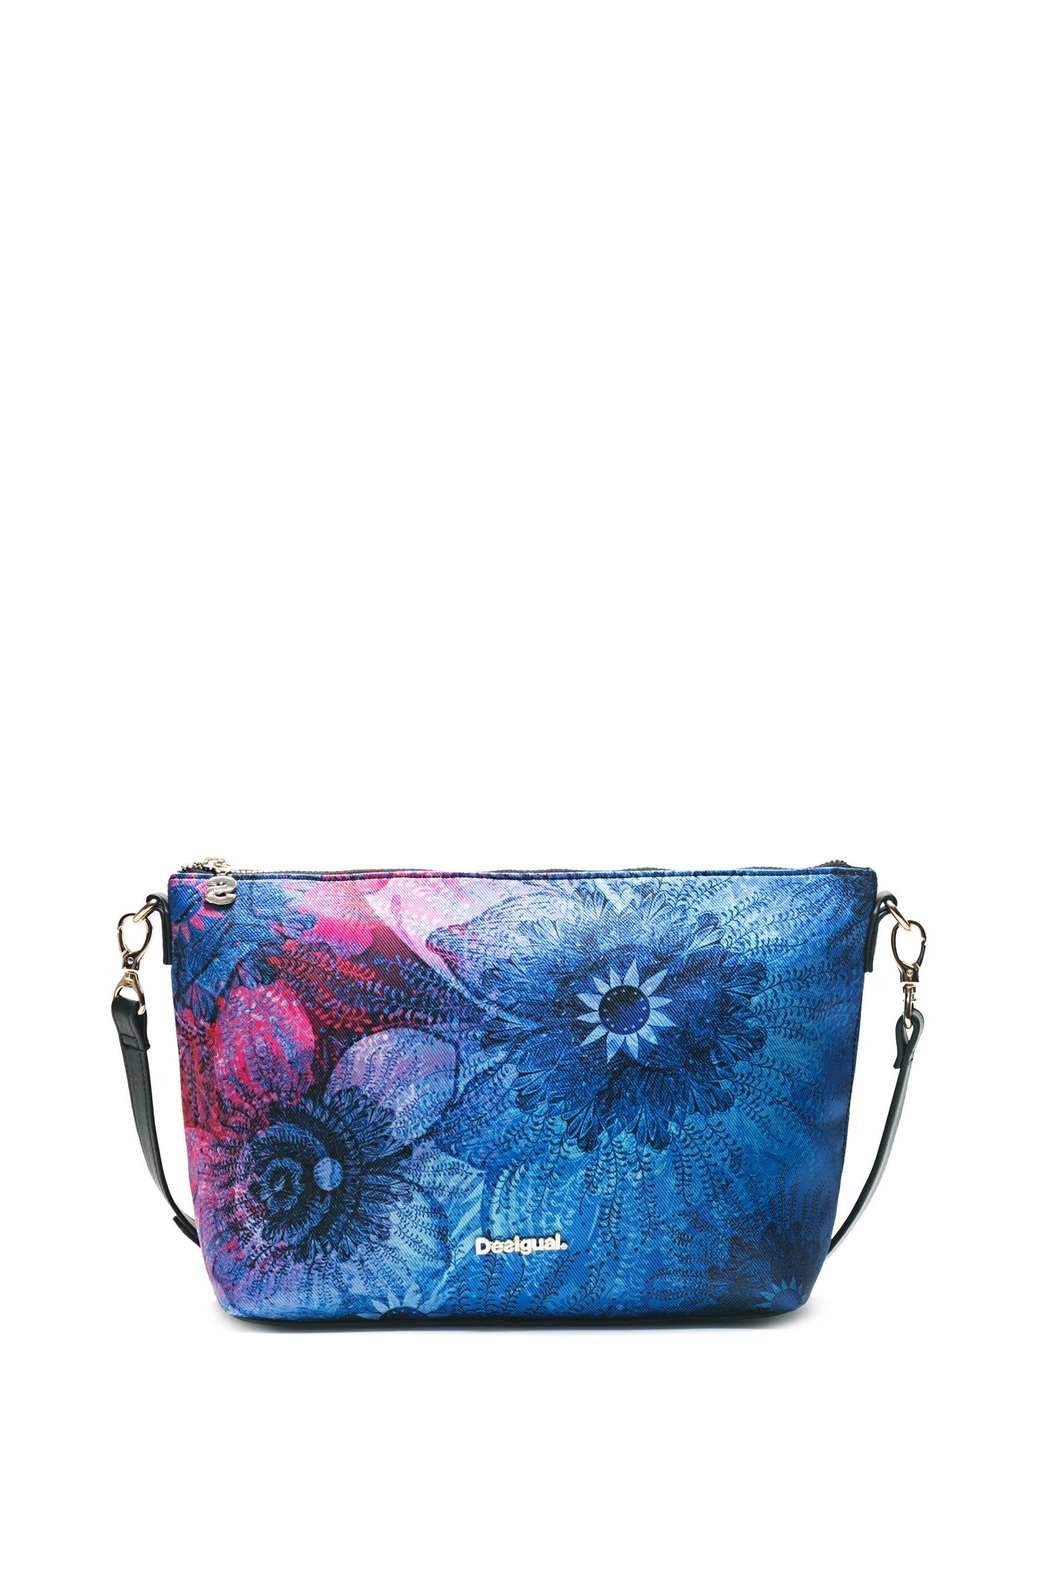 DESIGUAL Blue Messenger Bag - Main Image